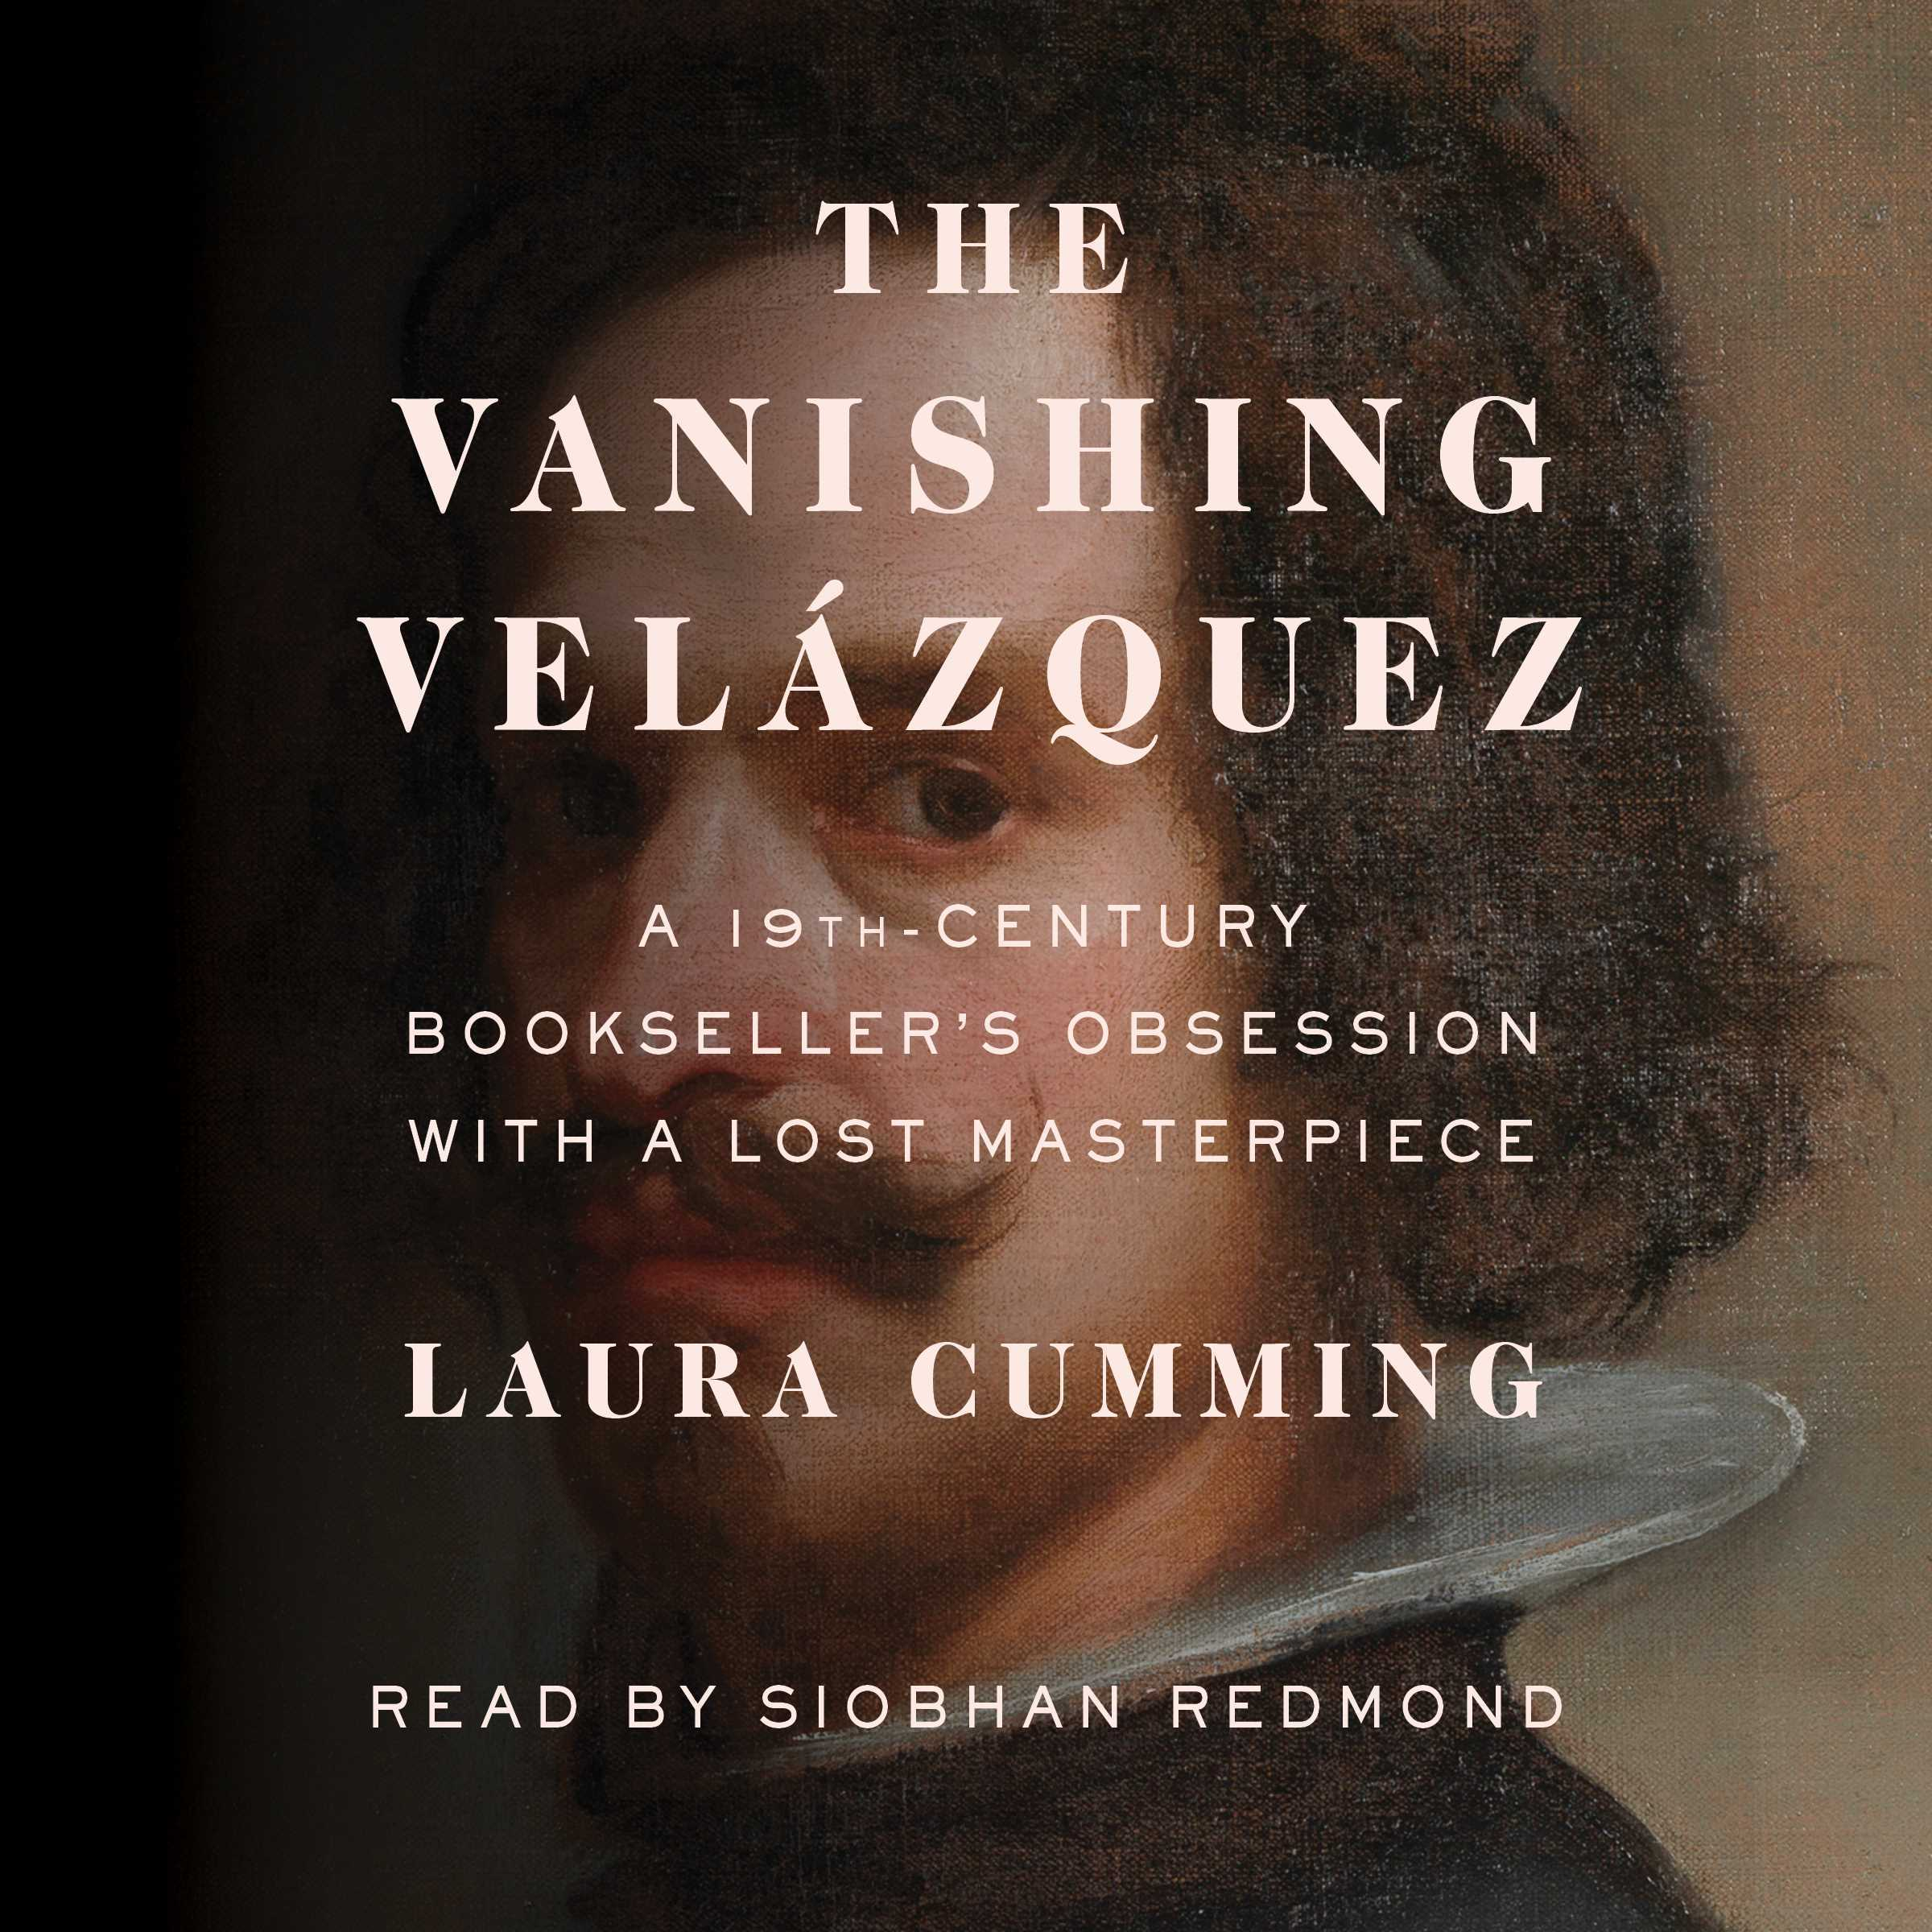 Printable The Vanishing Velázquez: A 19th Century Bookseller's Obsession with a Lost Masterpiece Audiobook Cover Art